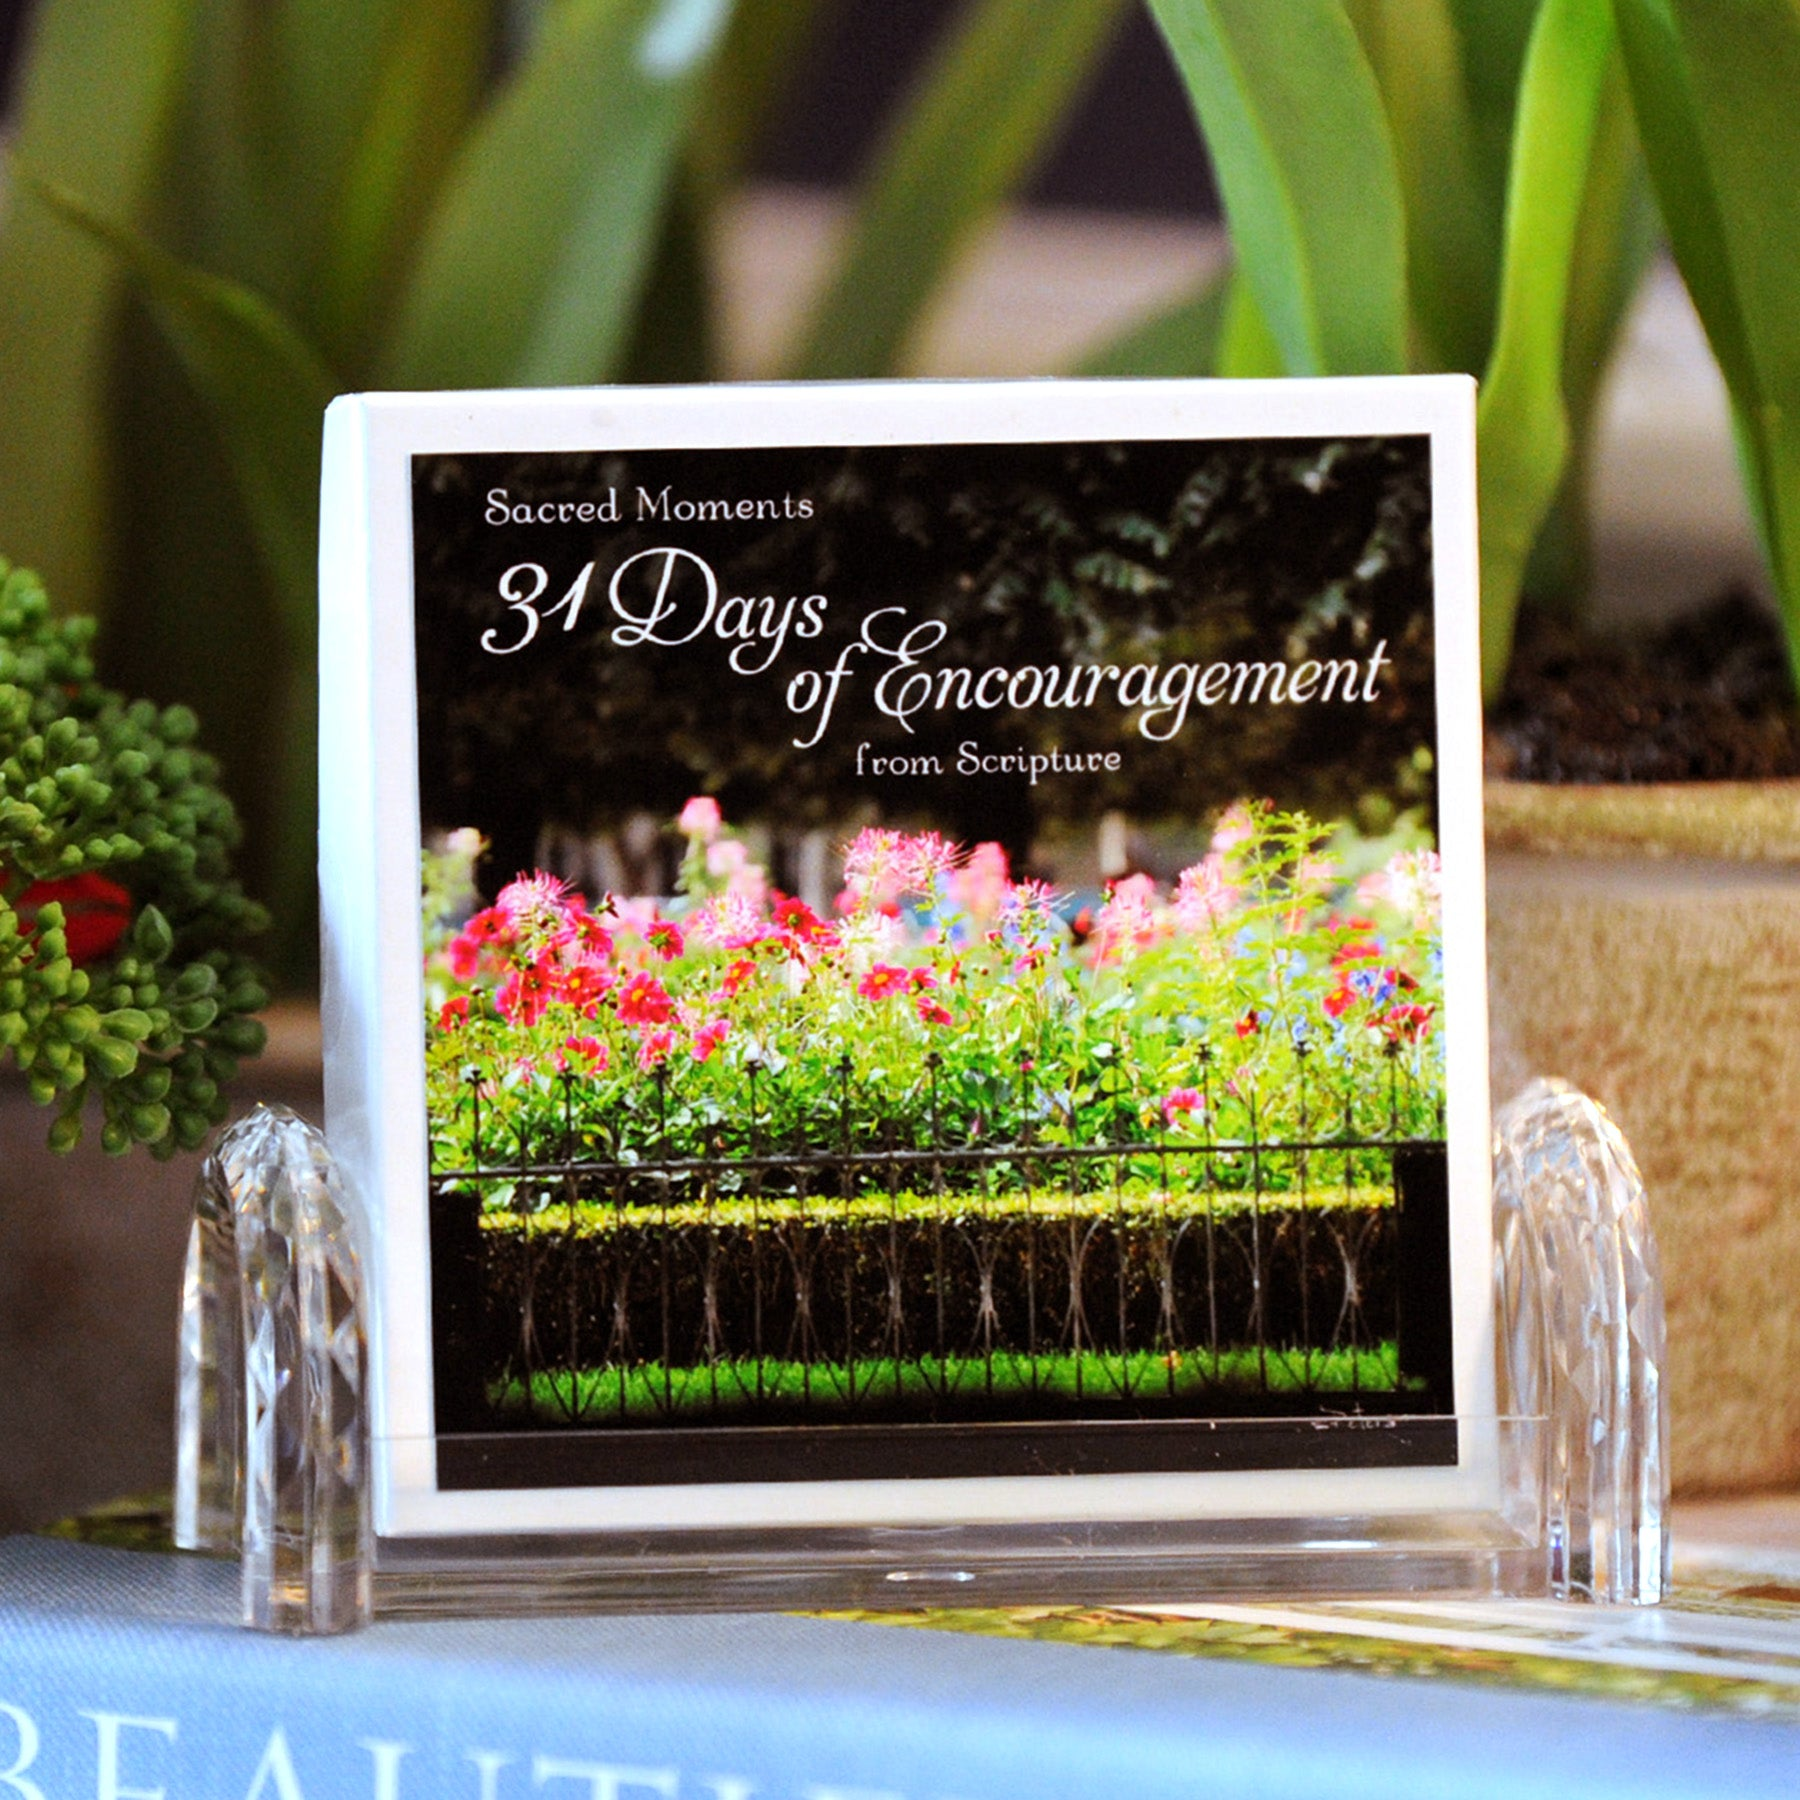 31 Days of Encouragement Boxed Mini Print Collection with Acrylic Holder